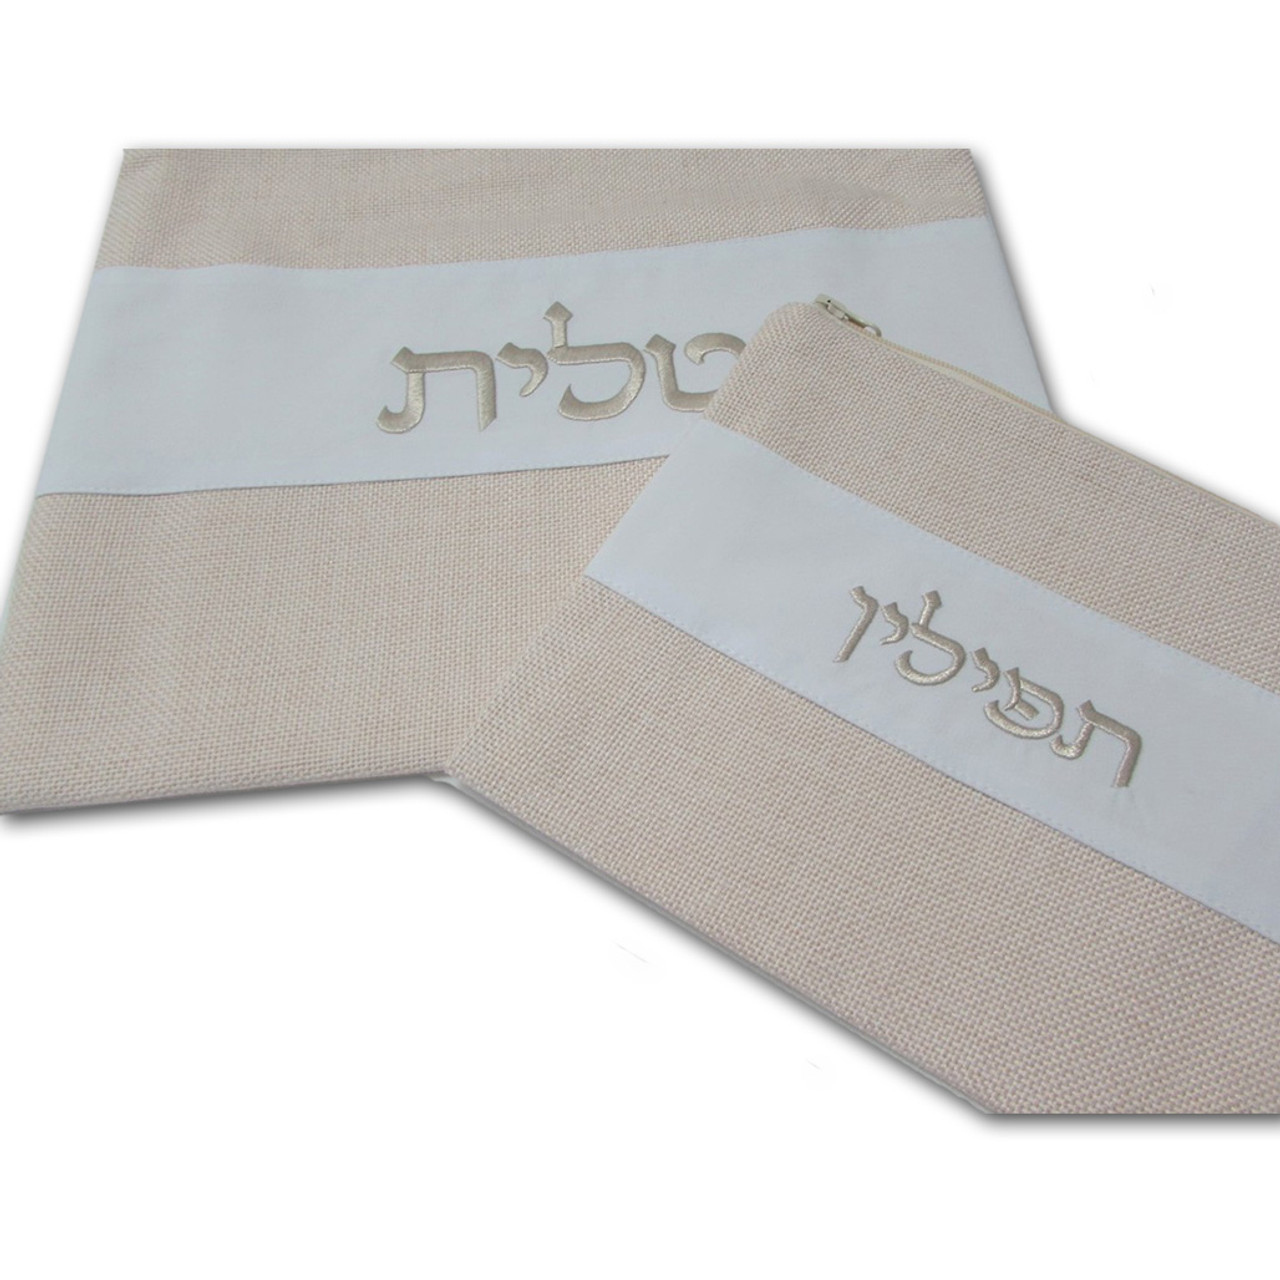 Silver on White Linen Tallit Bag